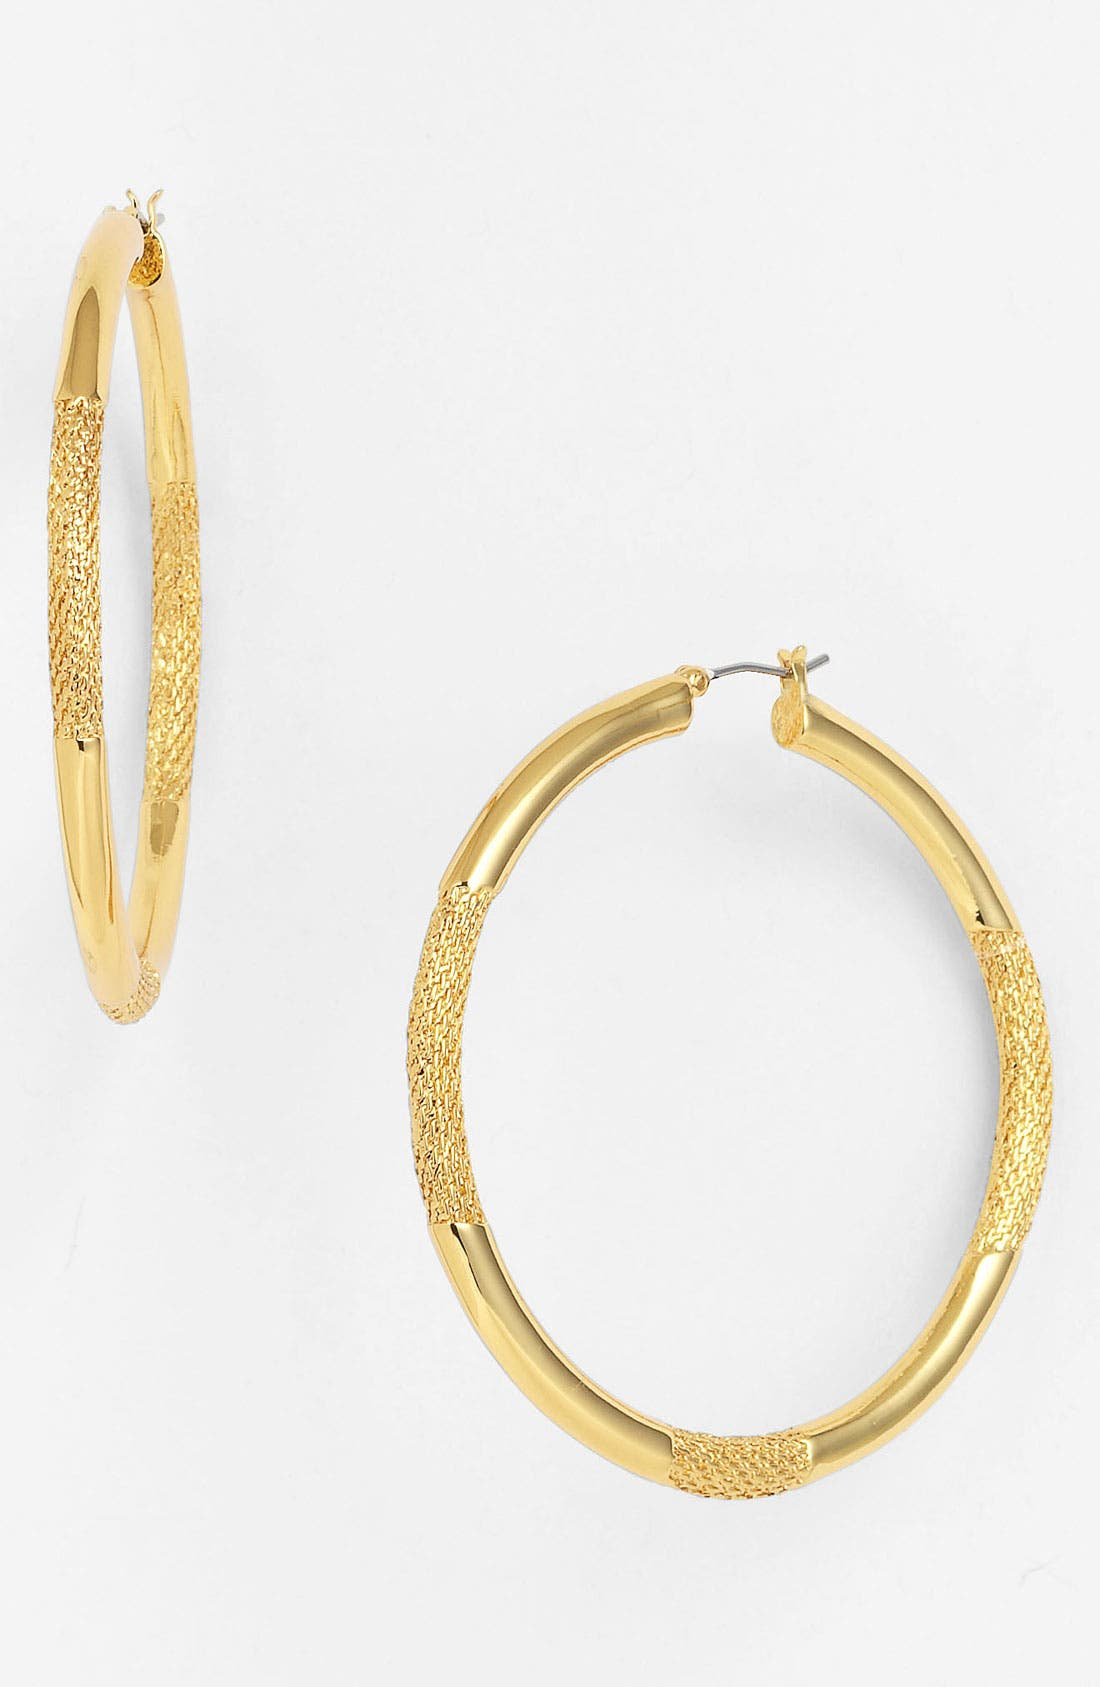 Main Image - Vince Camuto 'Clean Slate' Hoop Earrings